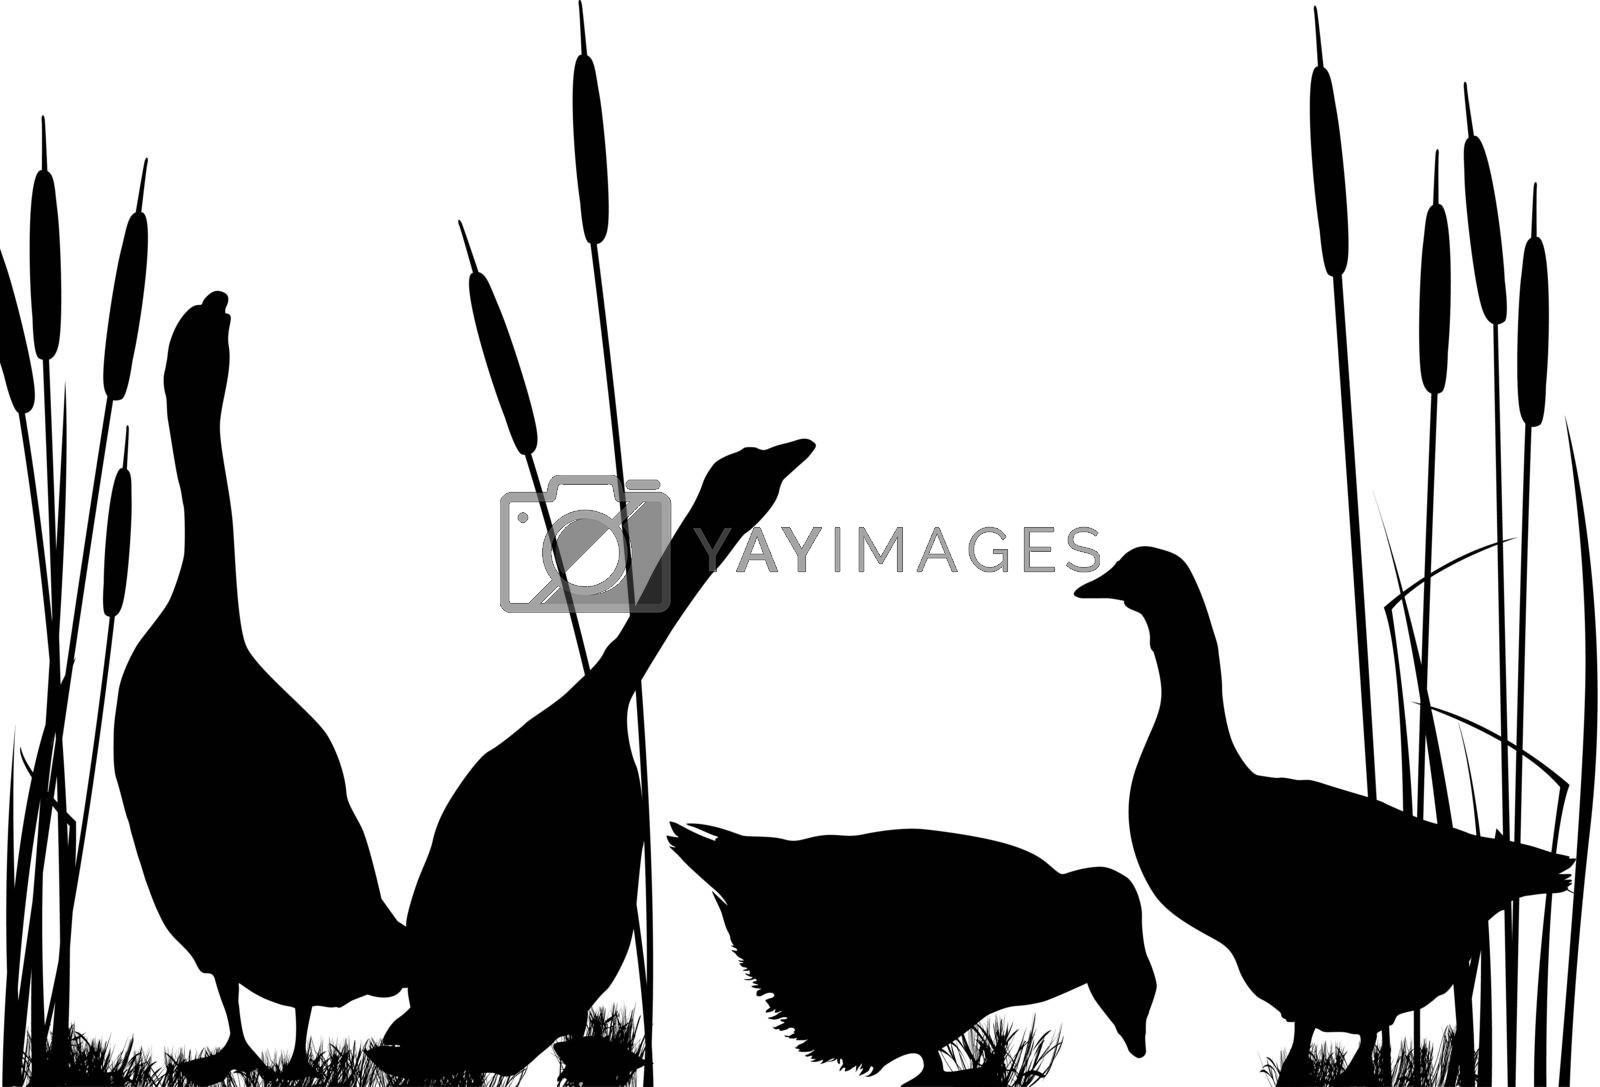 Goose silhouettes by Lirch